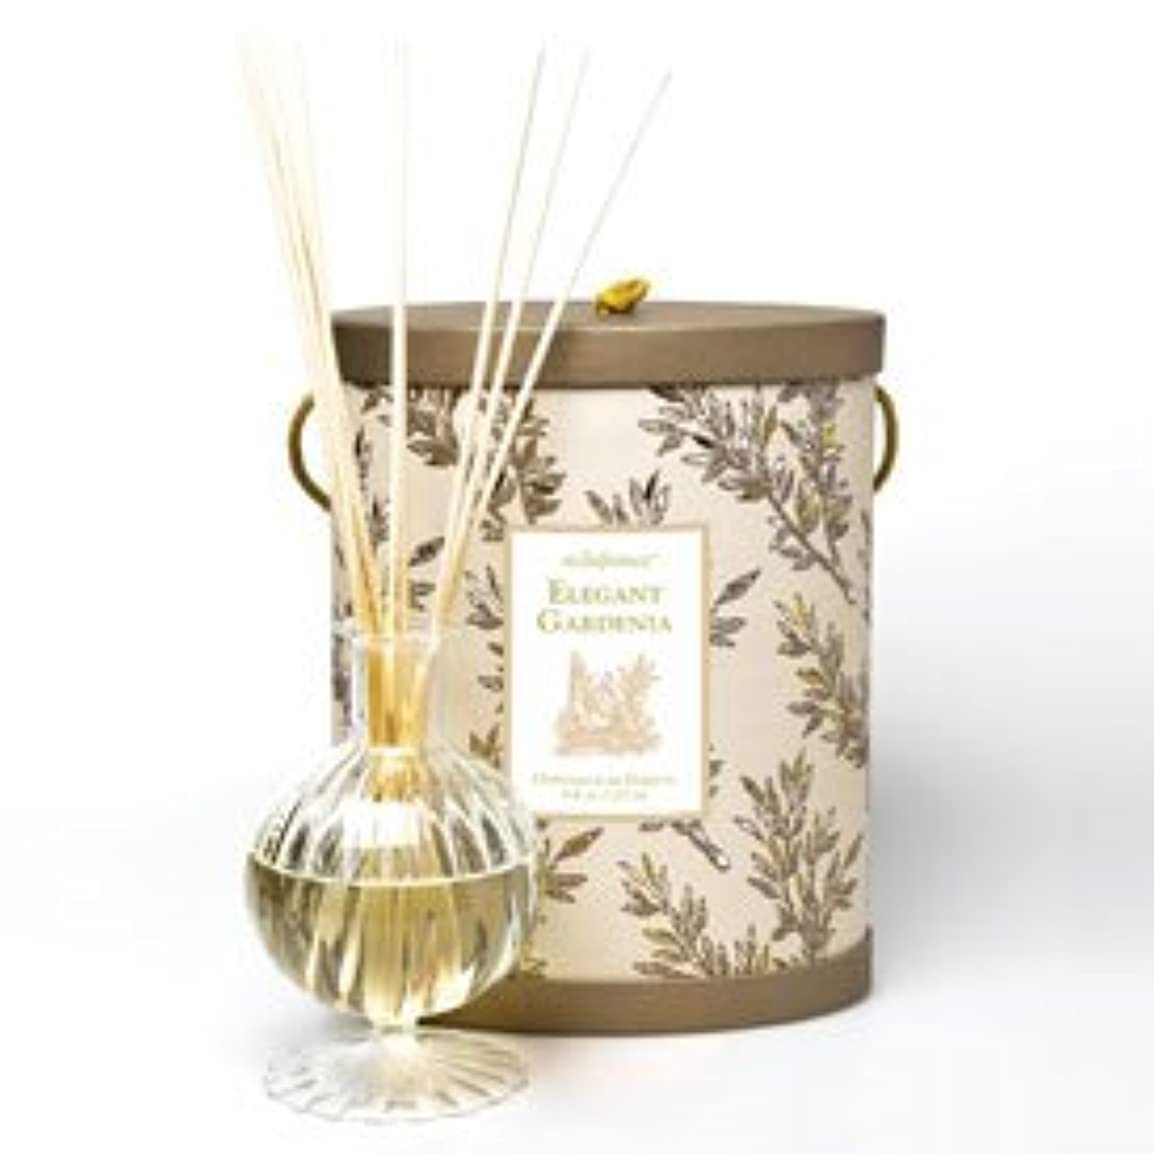 供給相談レオナルドダSeda France Elegant Gardenia Diffuser Set (NEW PACKAGING) by Seda France